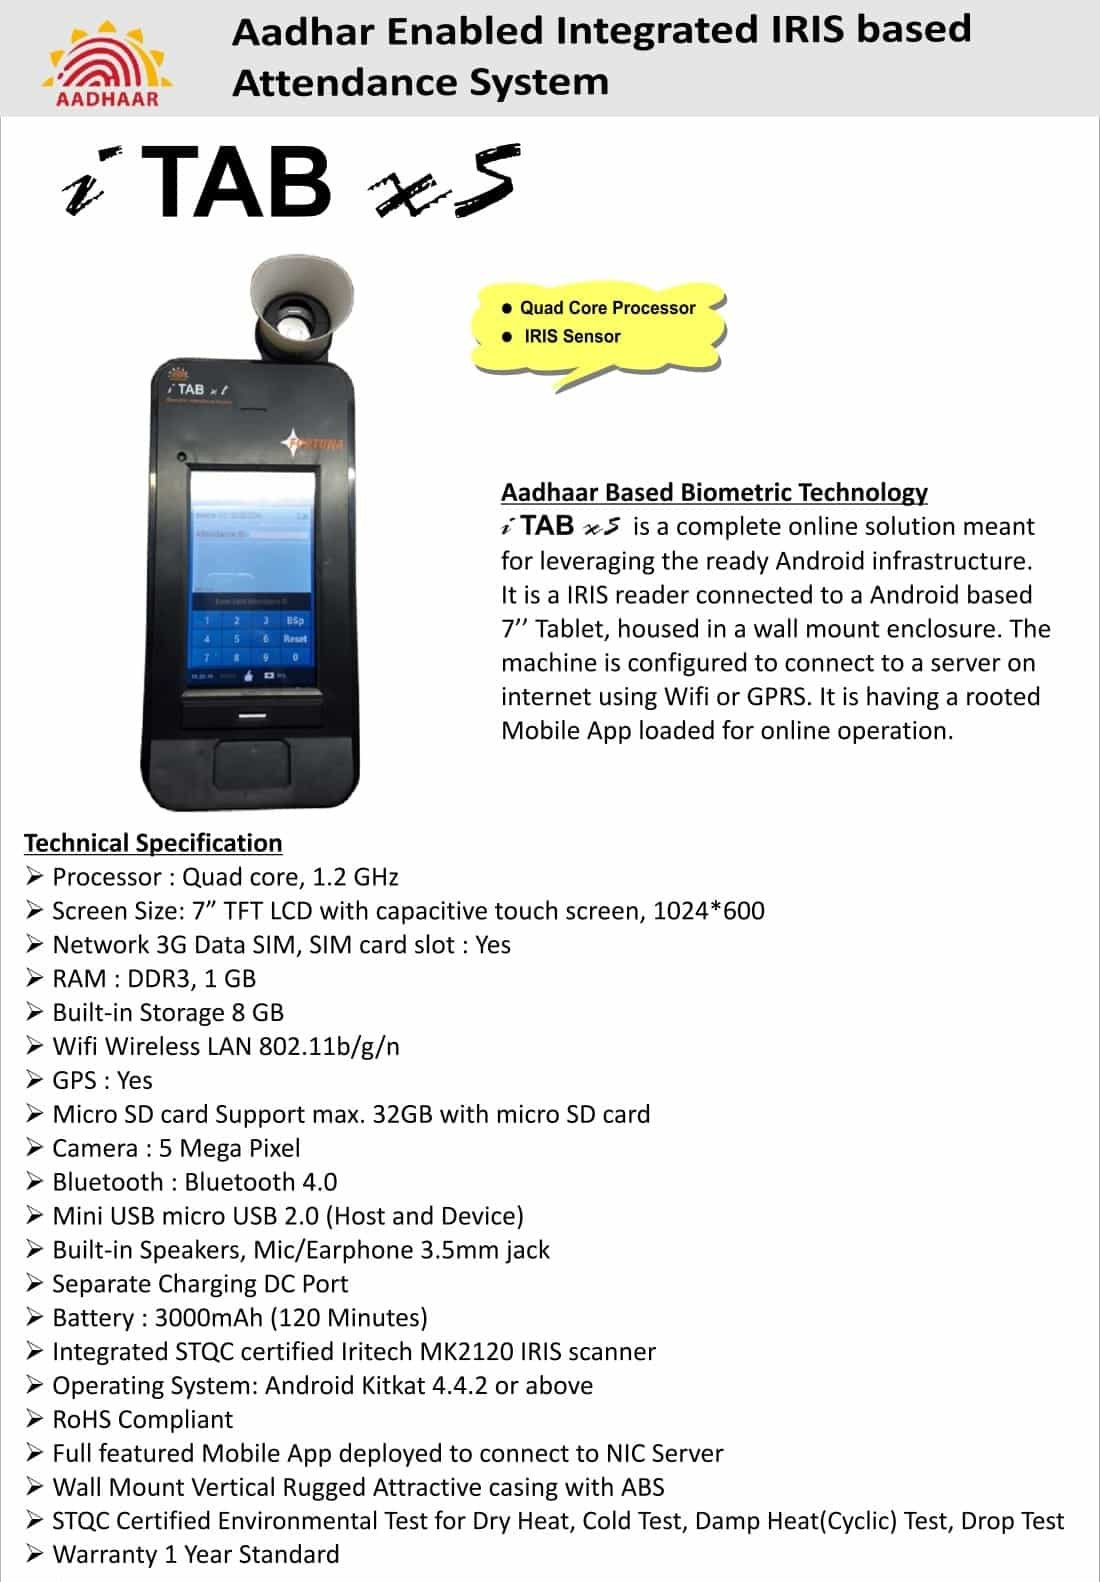 Aadhaar Enabled Biometric Attendance System (AEBAS)